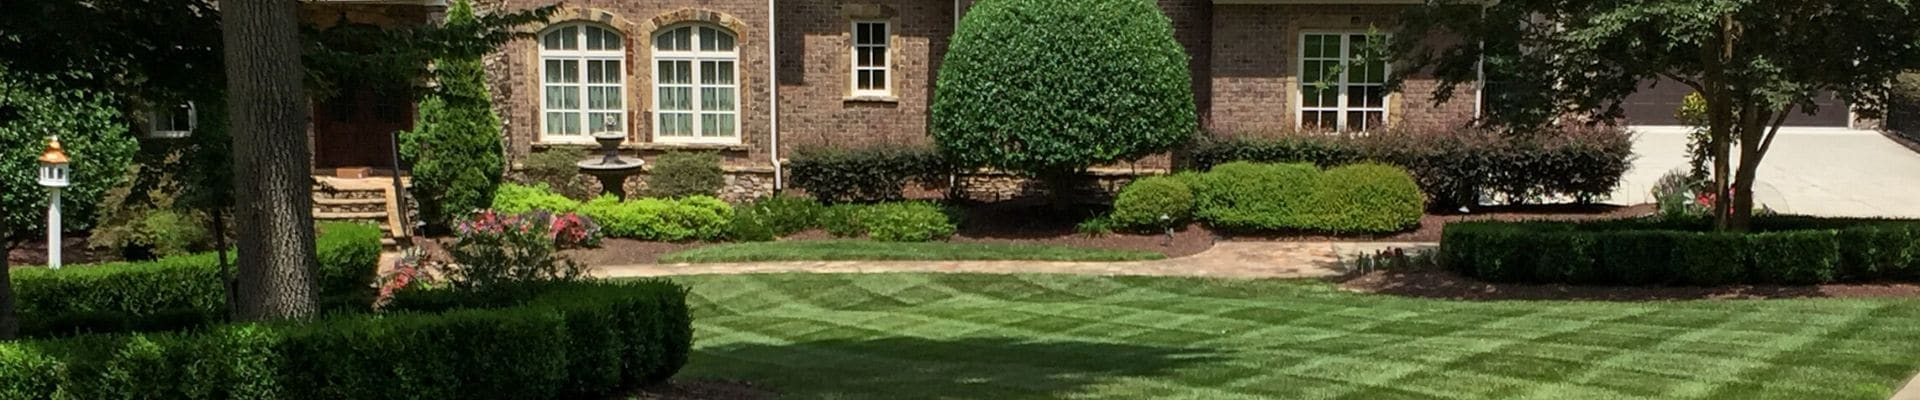 Beautiful lawn and landscape maintained by ECM Landscaping and Lawn Care in North Raleigh.